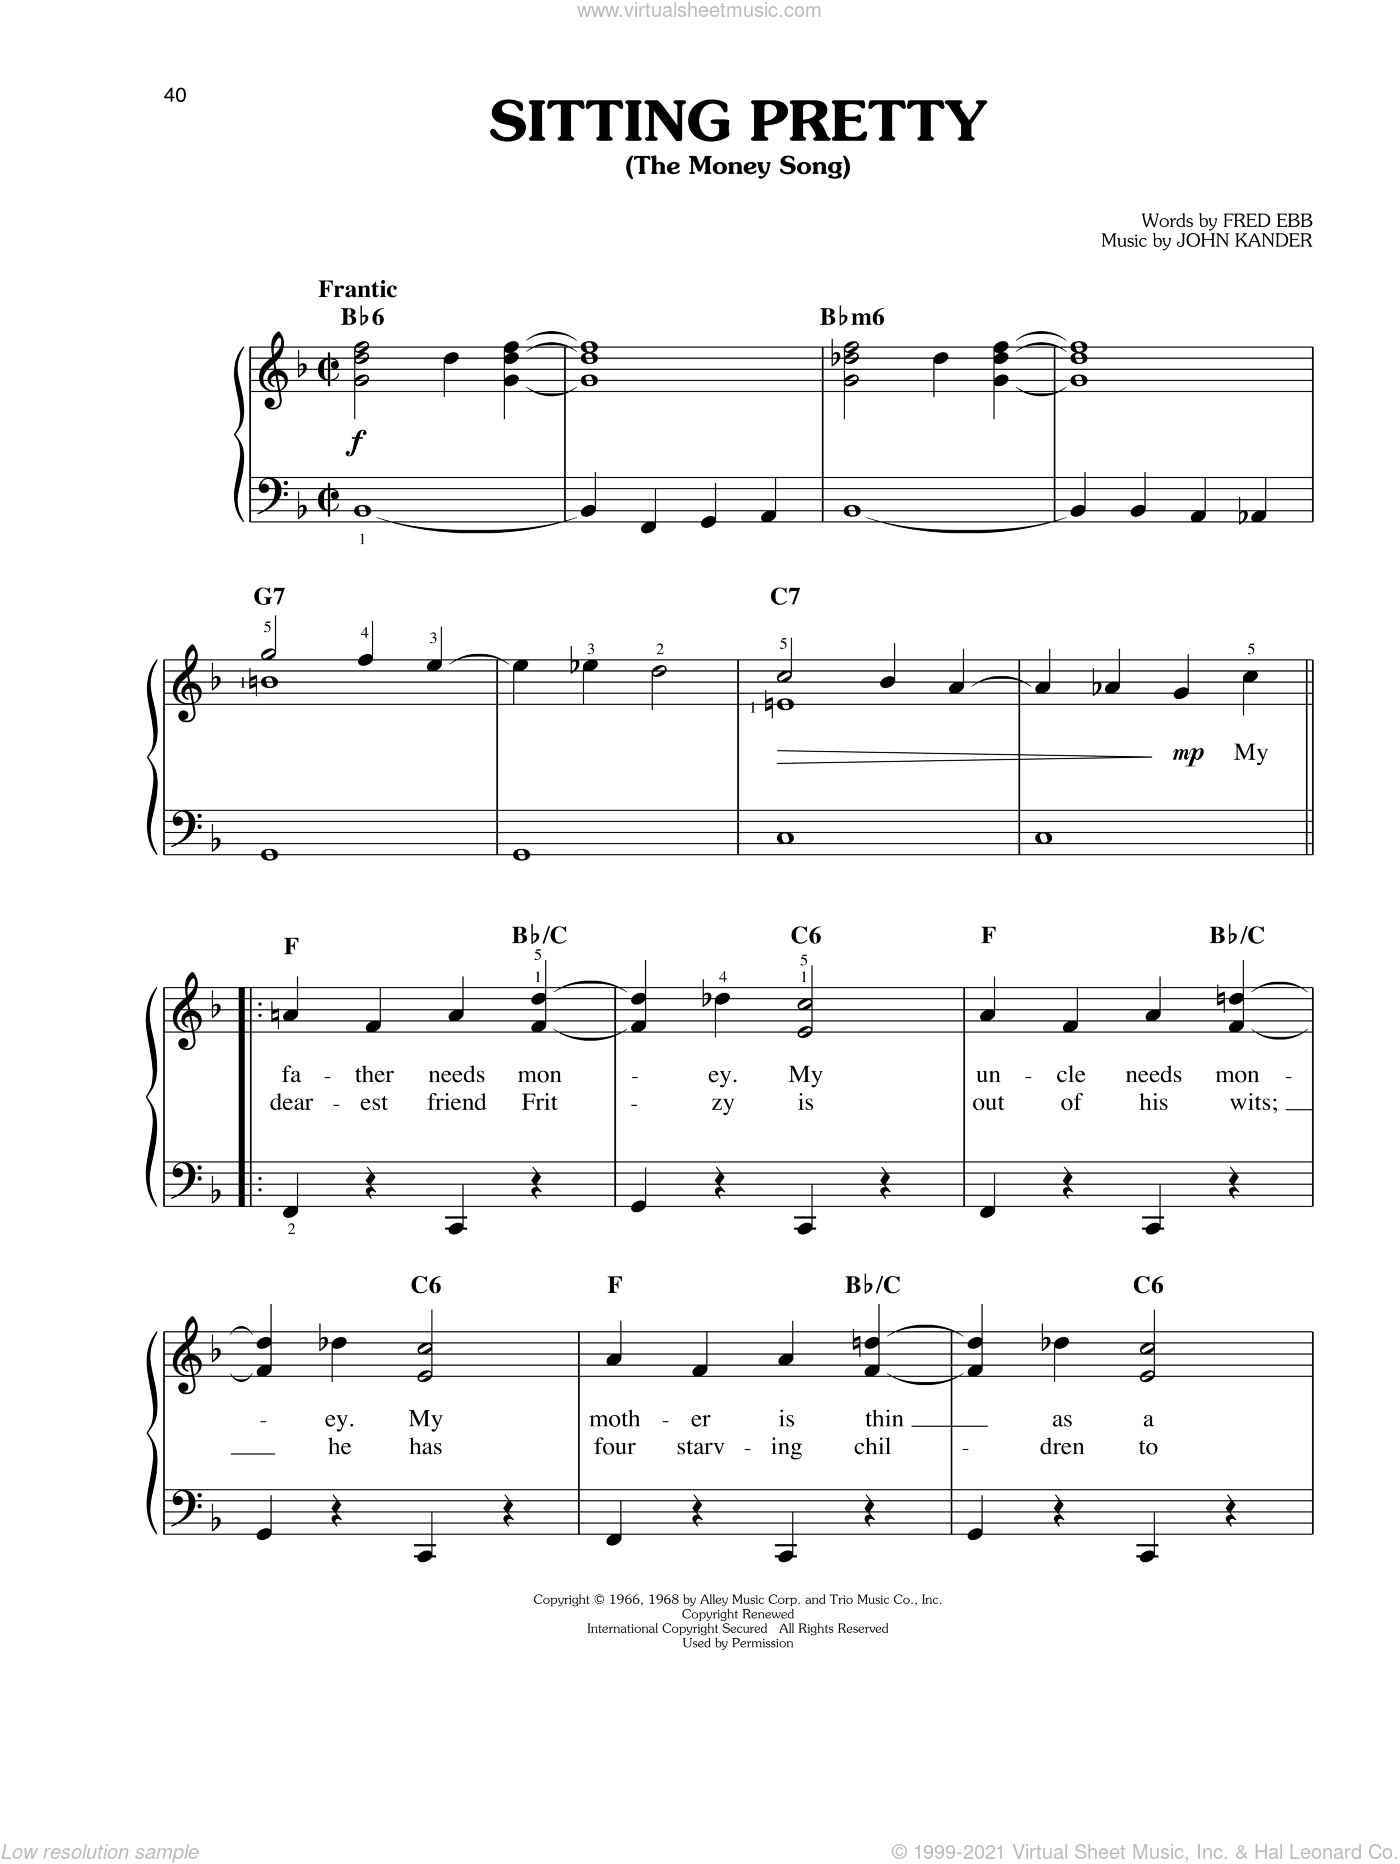 Sitting Pretty (The Money Song) sheet music for piano solo by John Kander and Fred Ebb, easy. Score Image Preview.